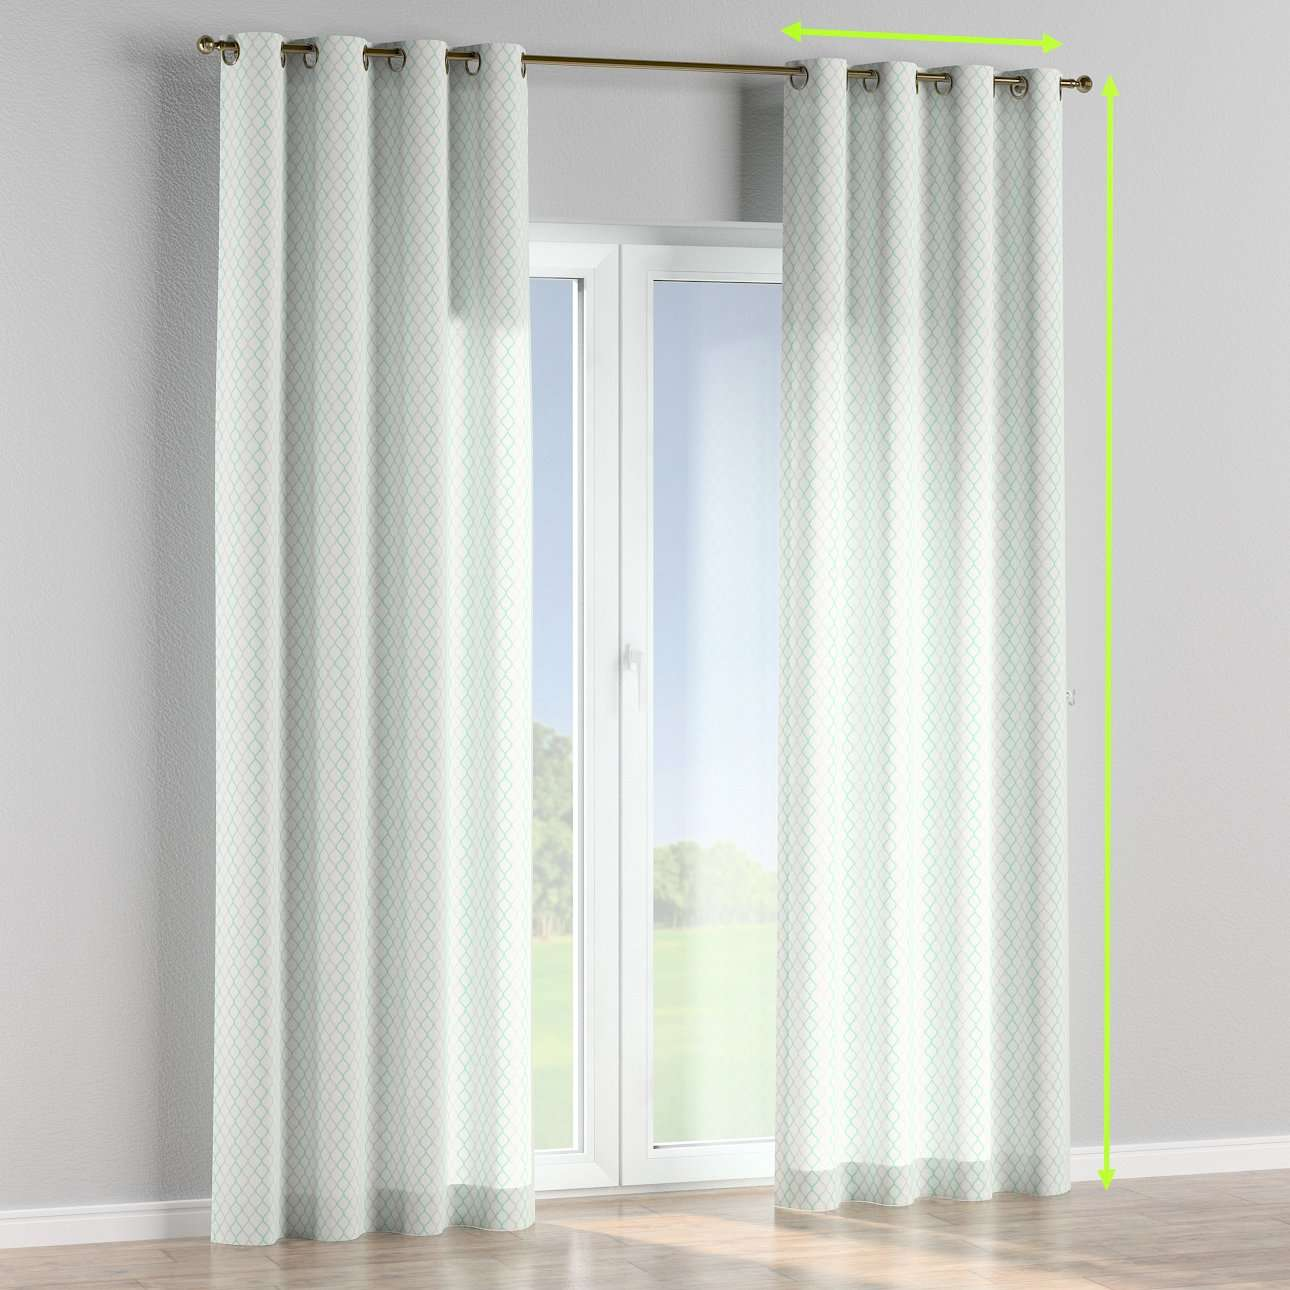 Eyelet curtains in collection Geometric, fabric: 141-47